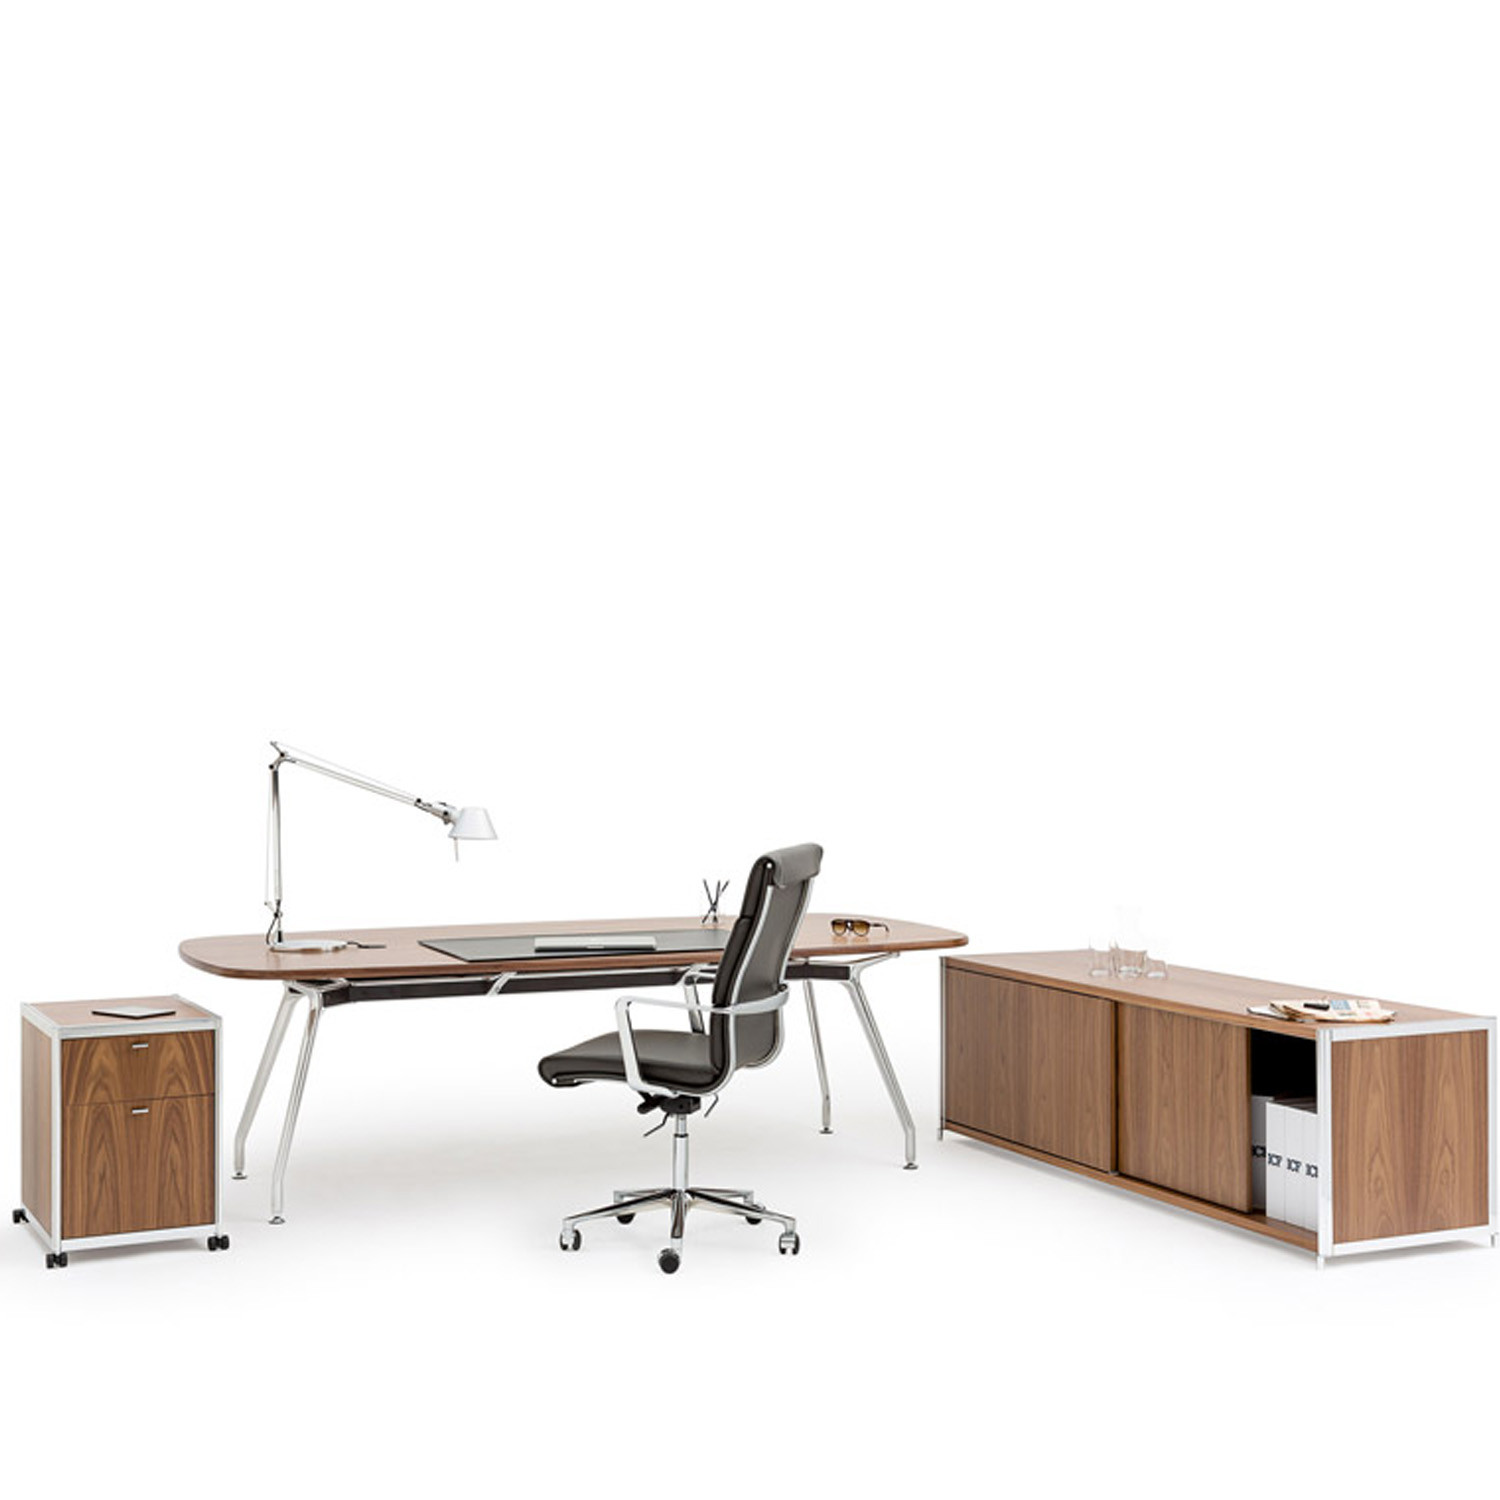 Unitable Executive Desk and Credenza